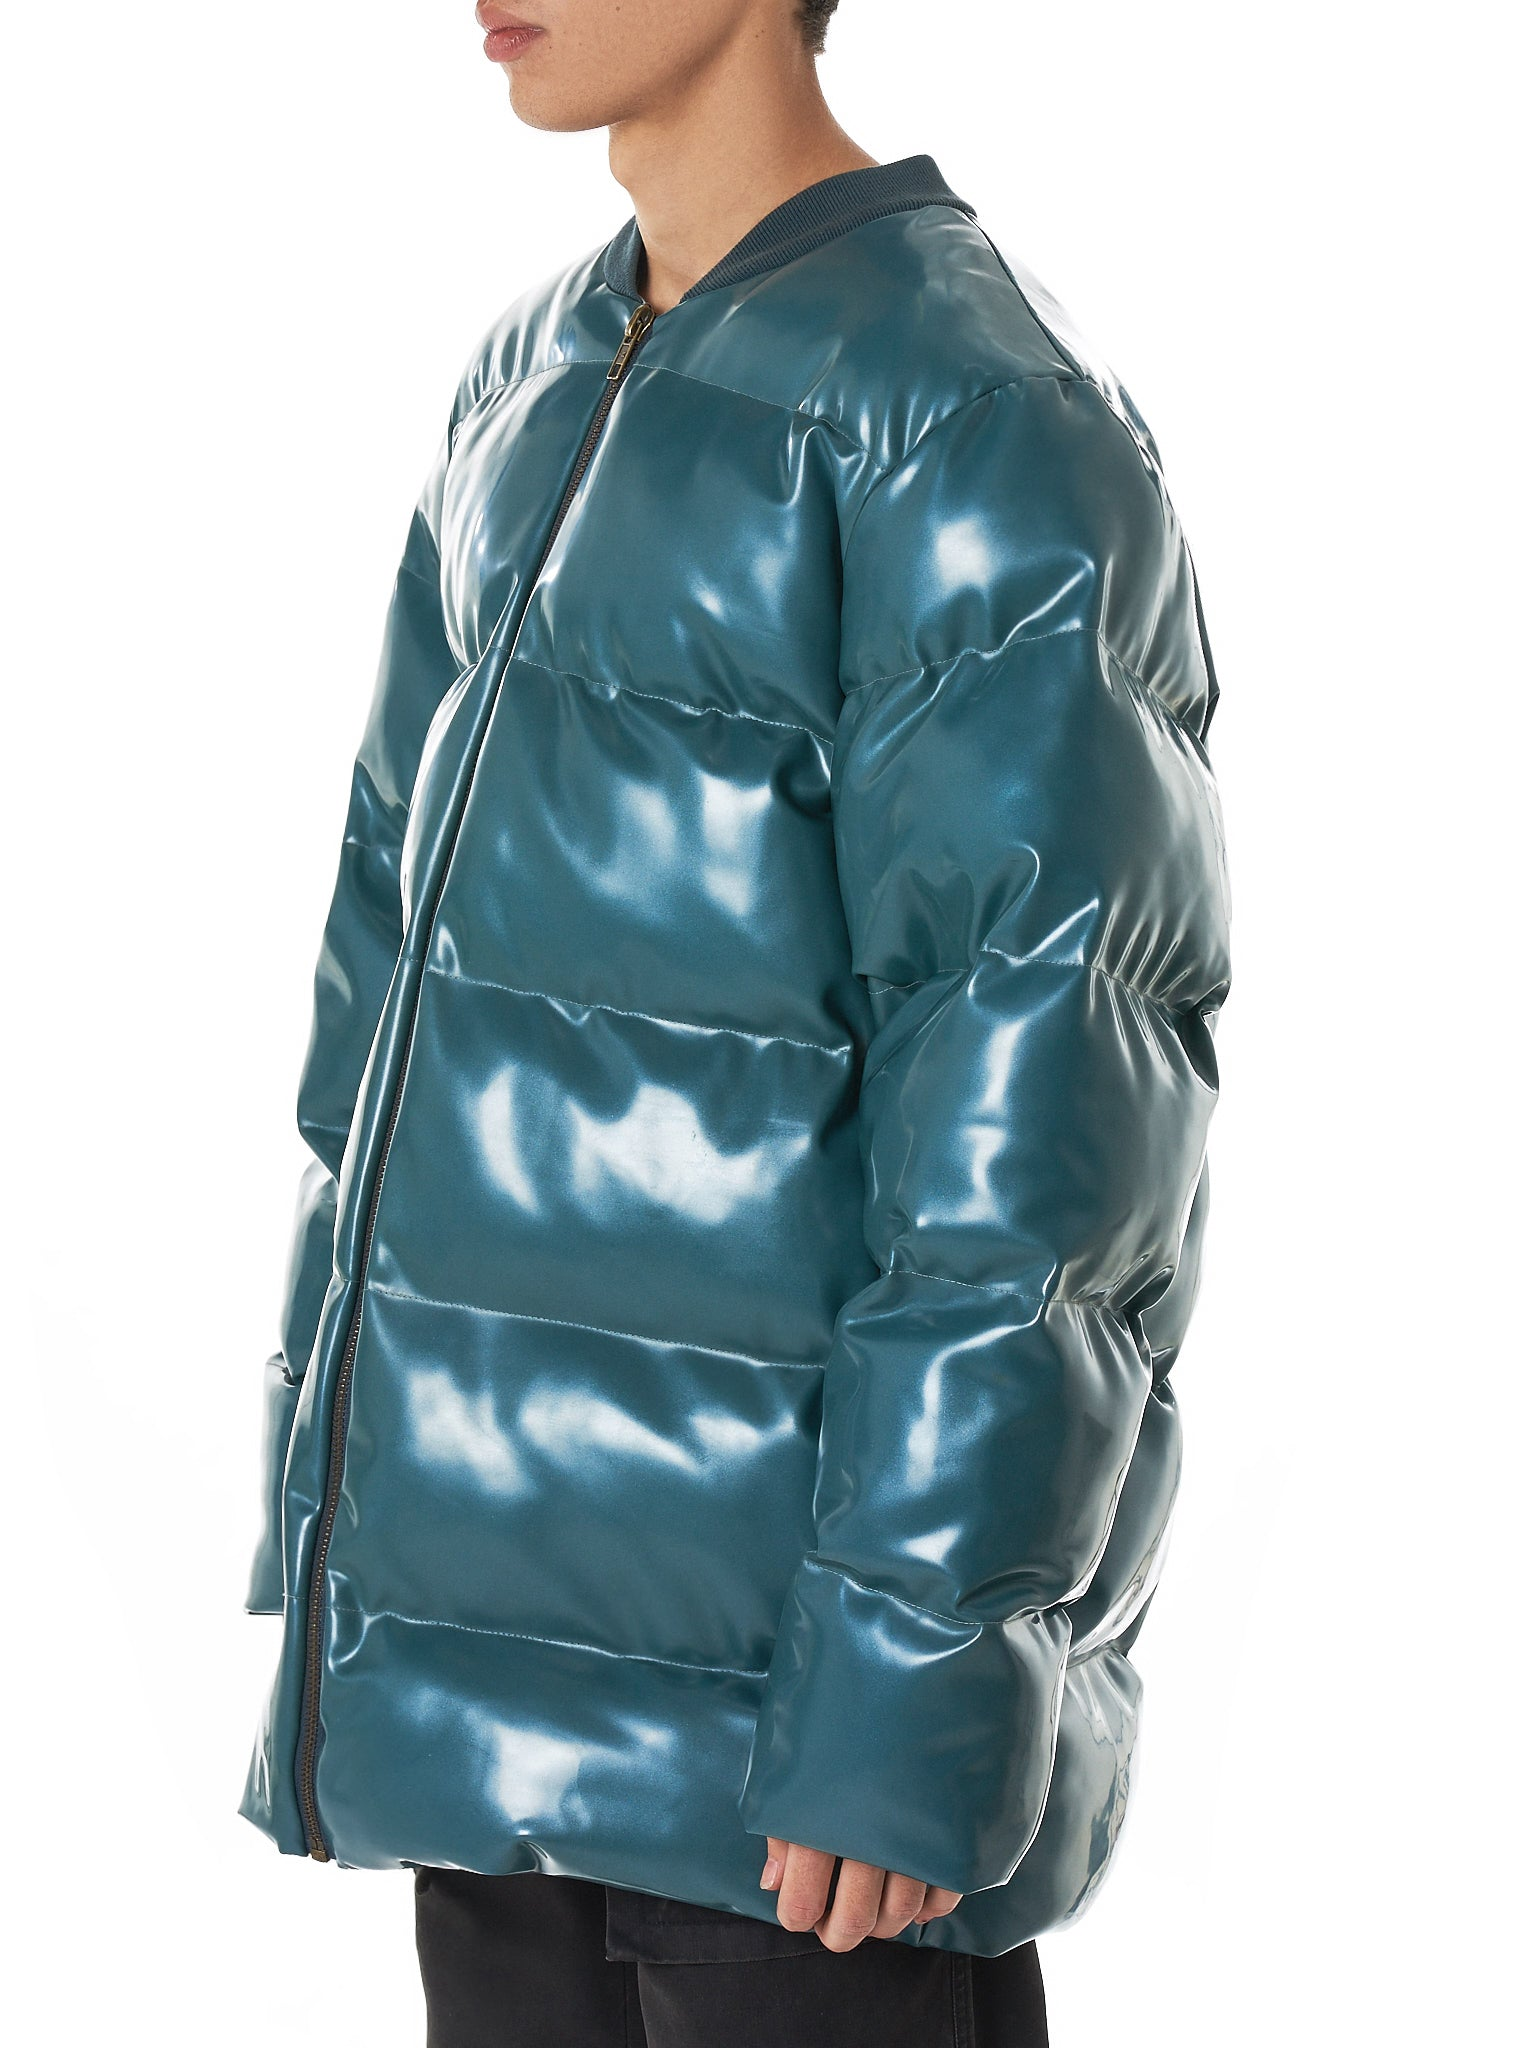 Arthur Avellano Latex Jacket - Hlorenzo Side